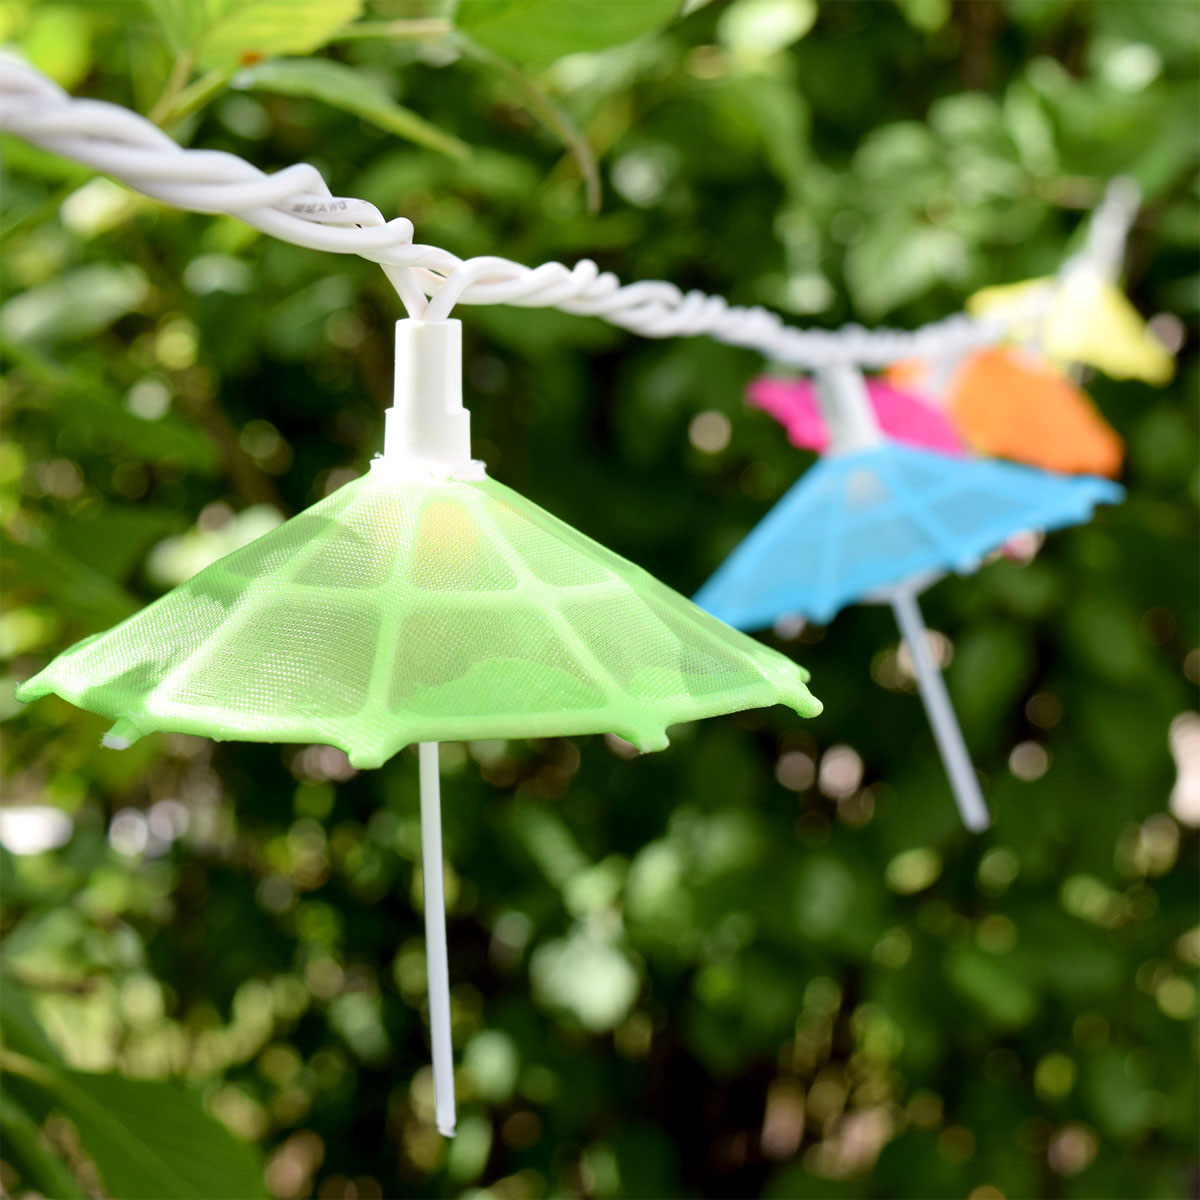 Gentil Mini Umbrella Party String LIghts